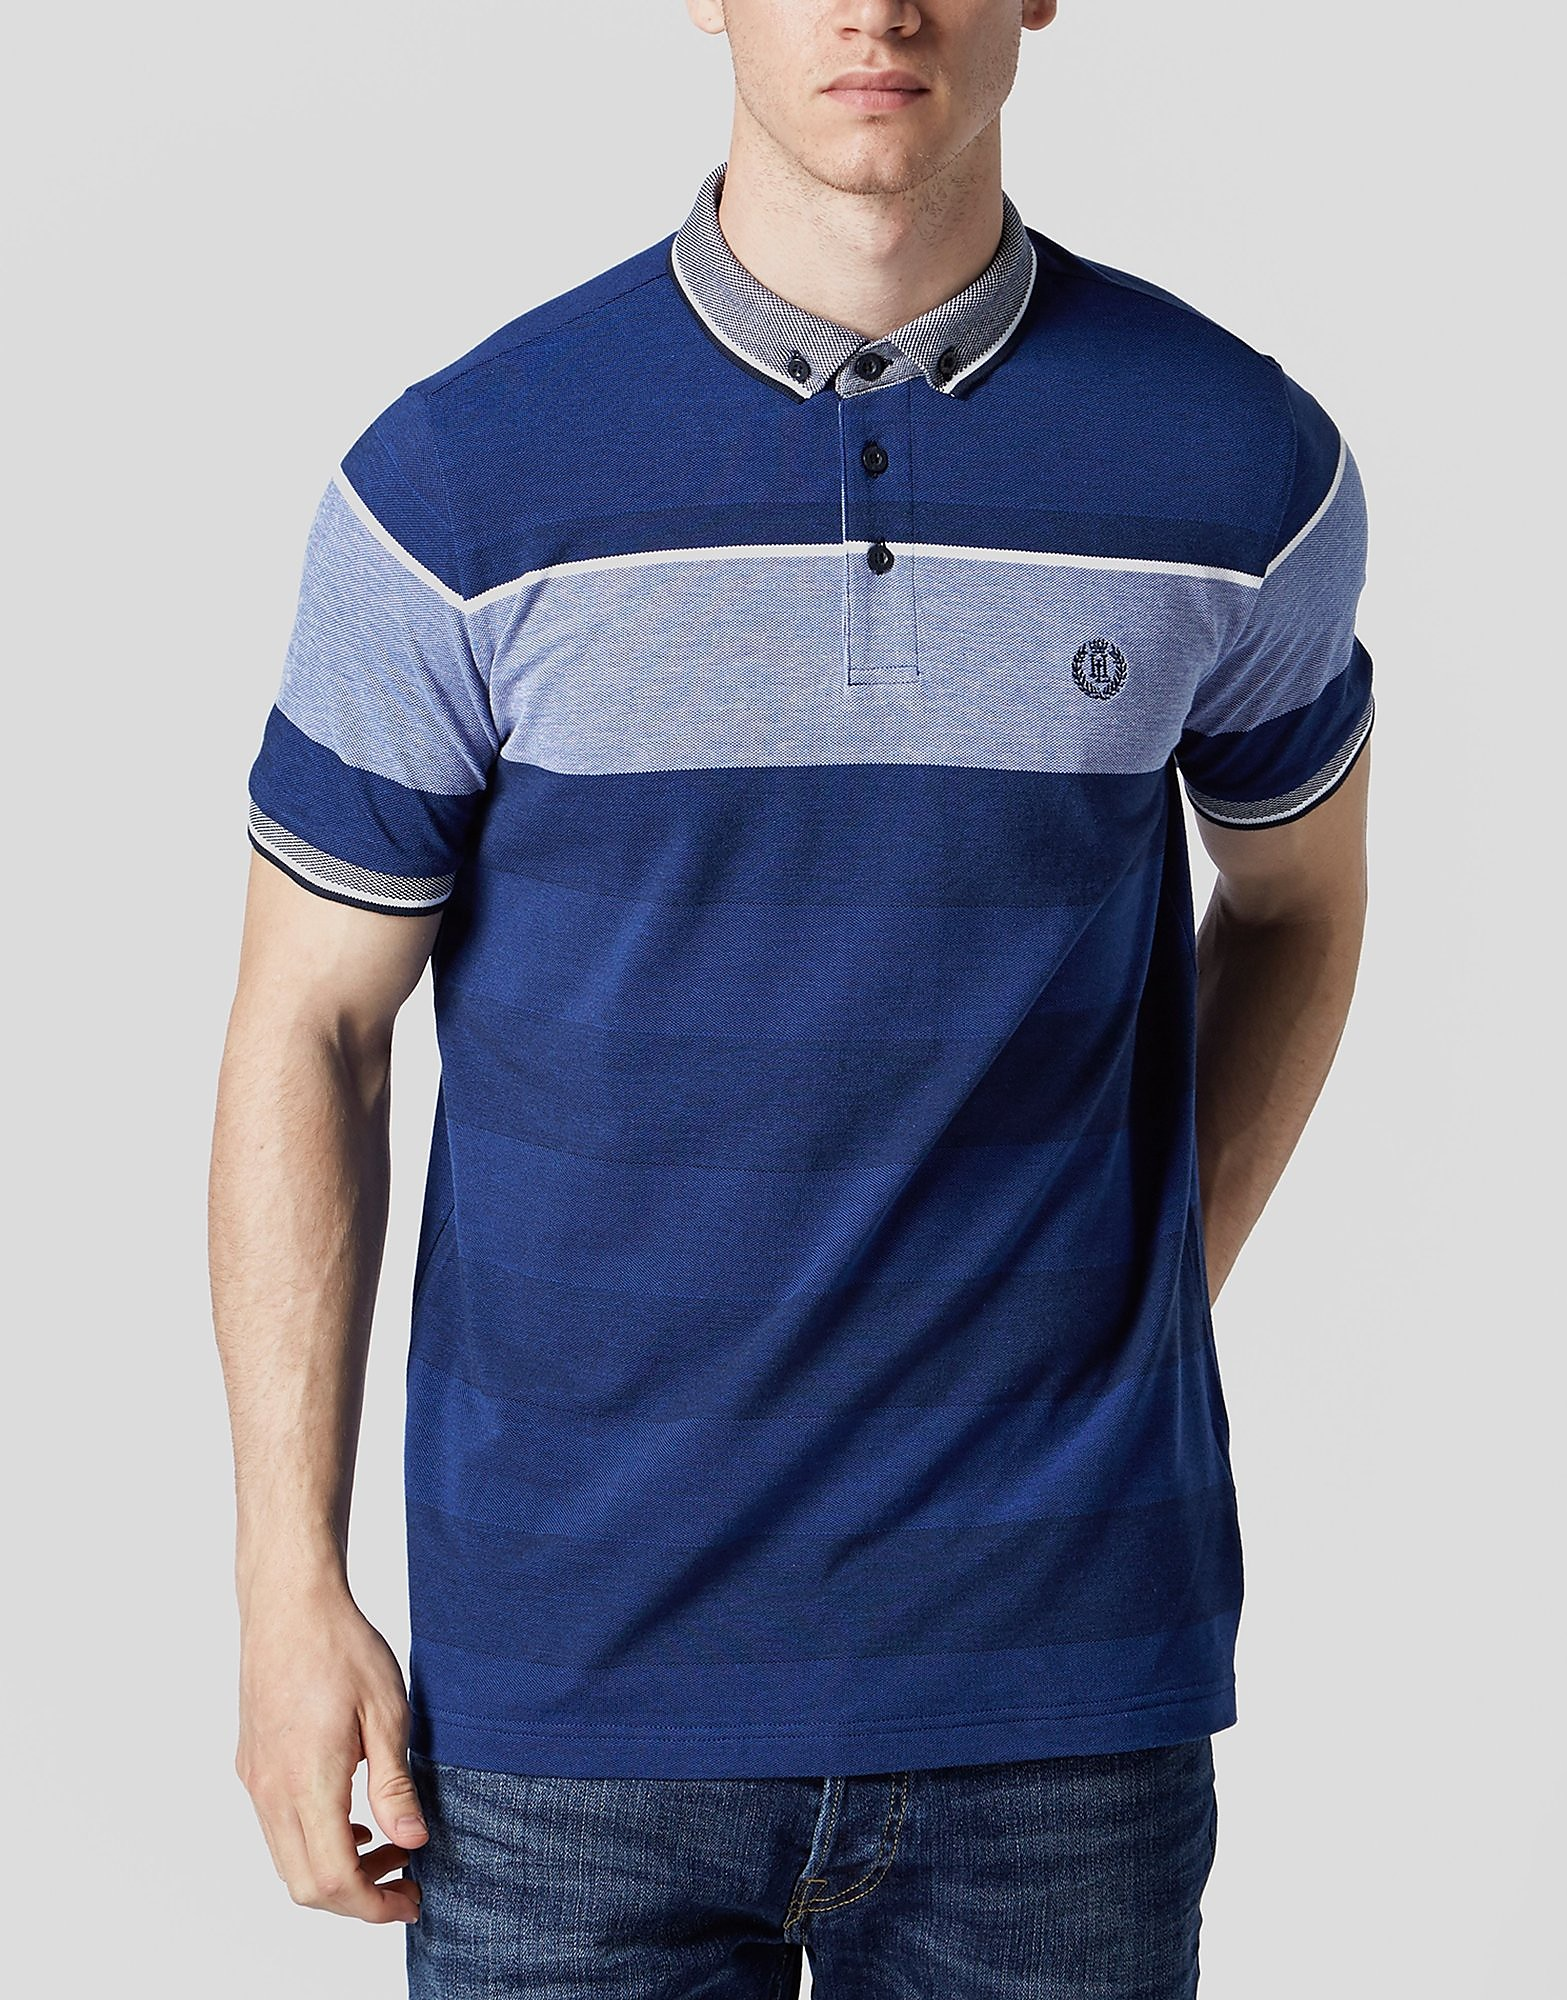 Henri Lloyd Bilting Stripe Polo Shirt  Blue Blue